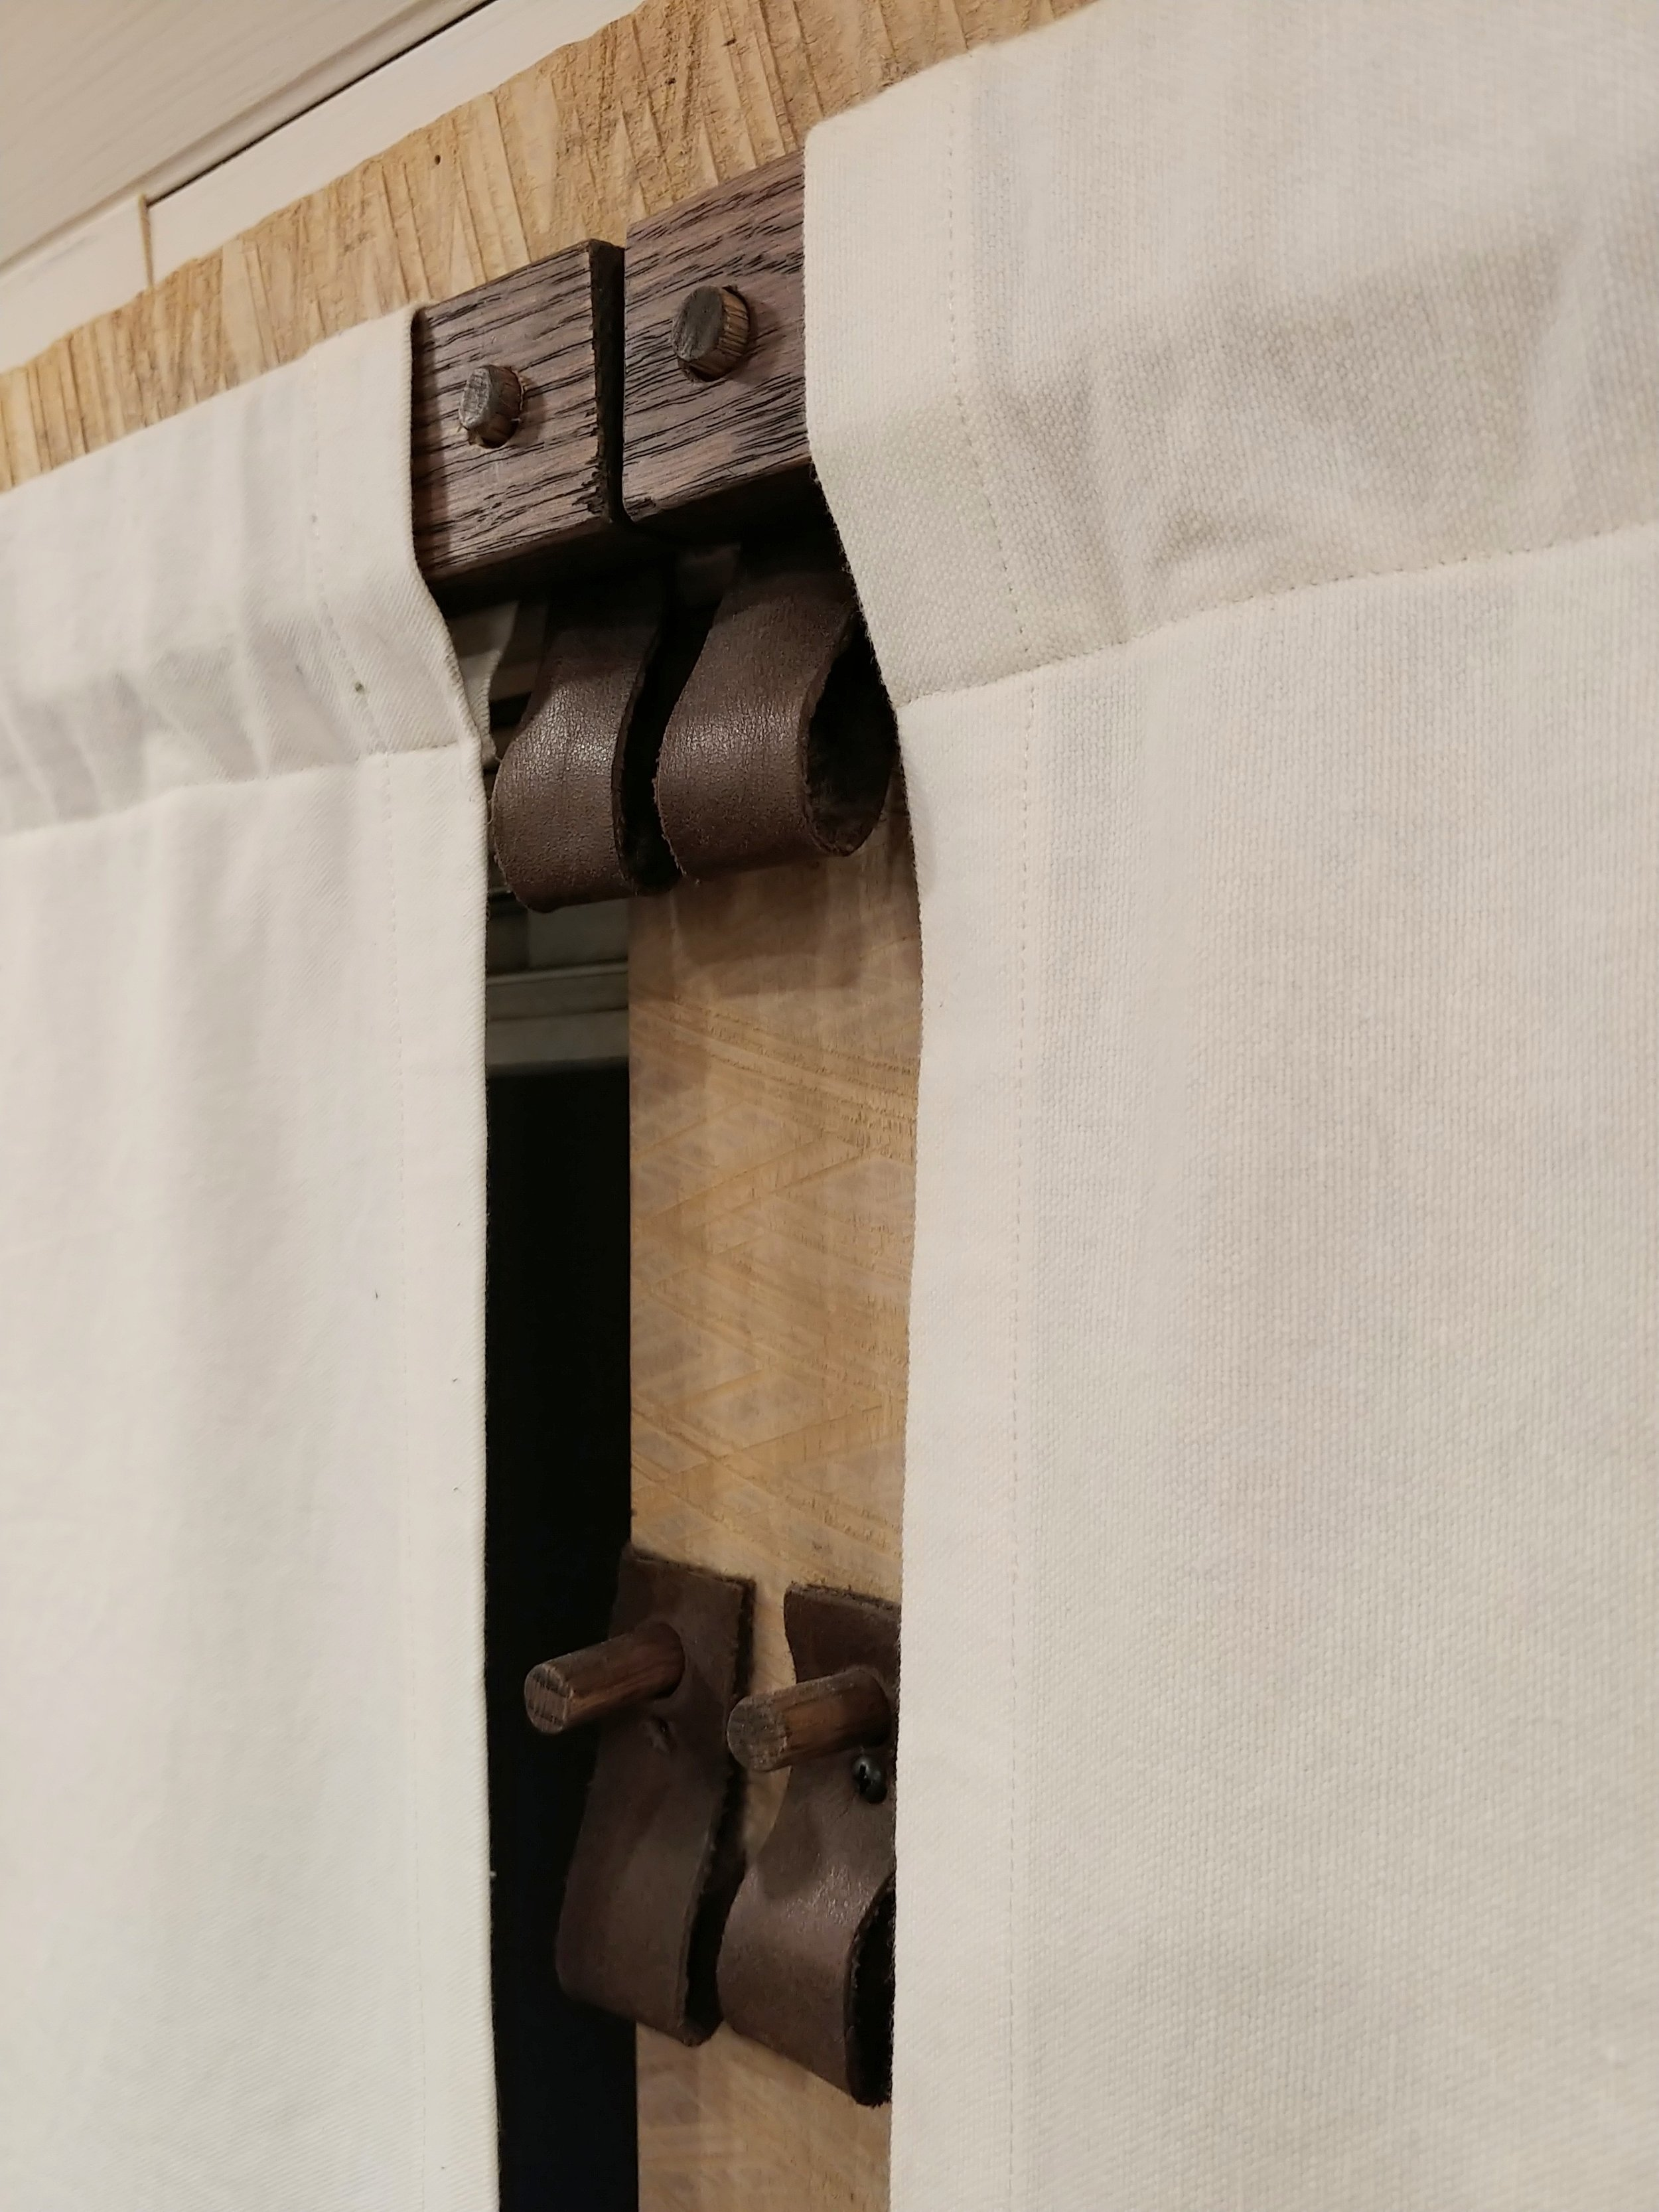 Upper and lower dowels give the top of the curtain two options for positioning. Leather loops allow the bottom of the curtain to be lifted to various heights.